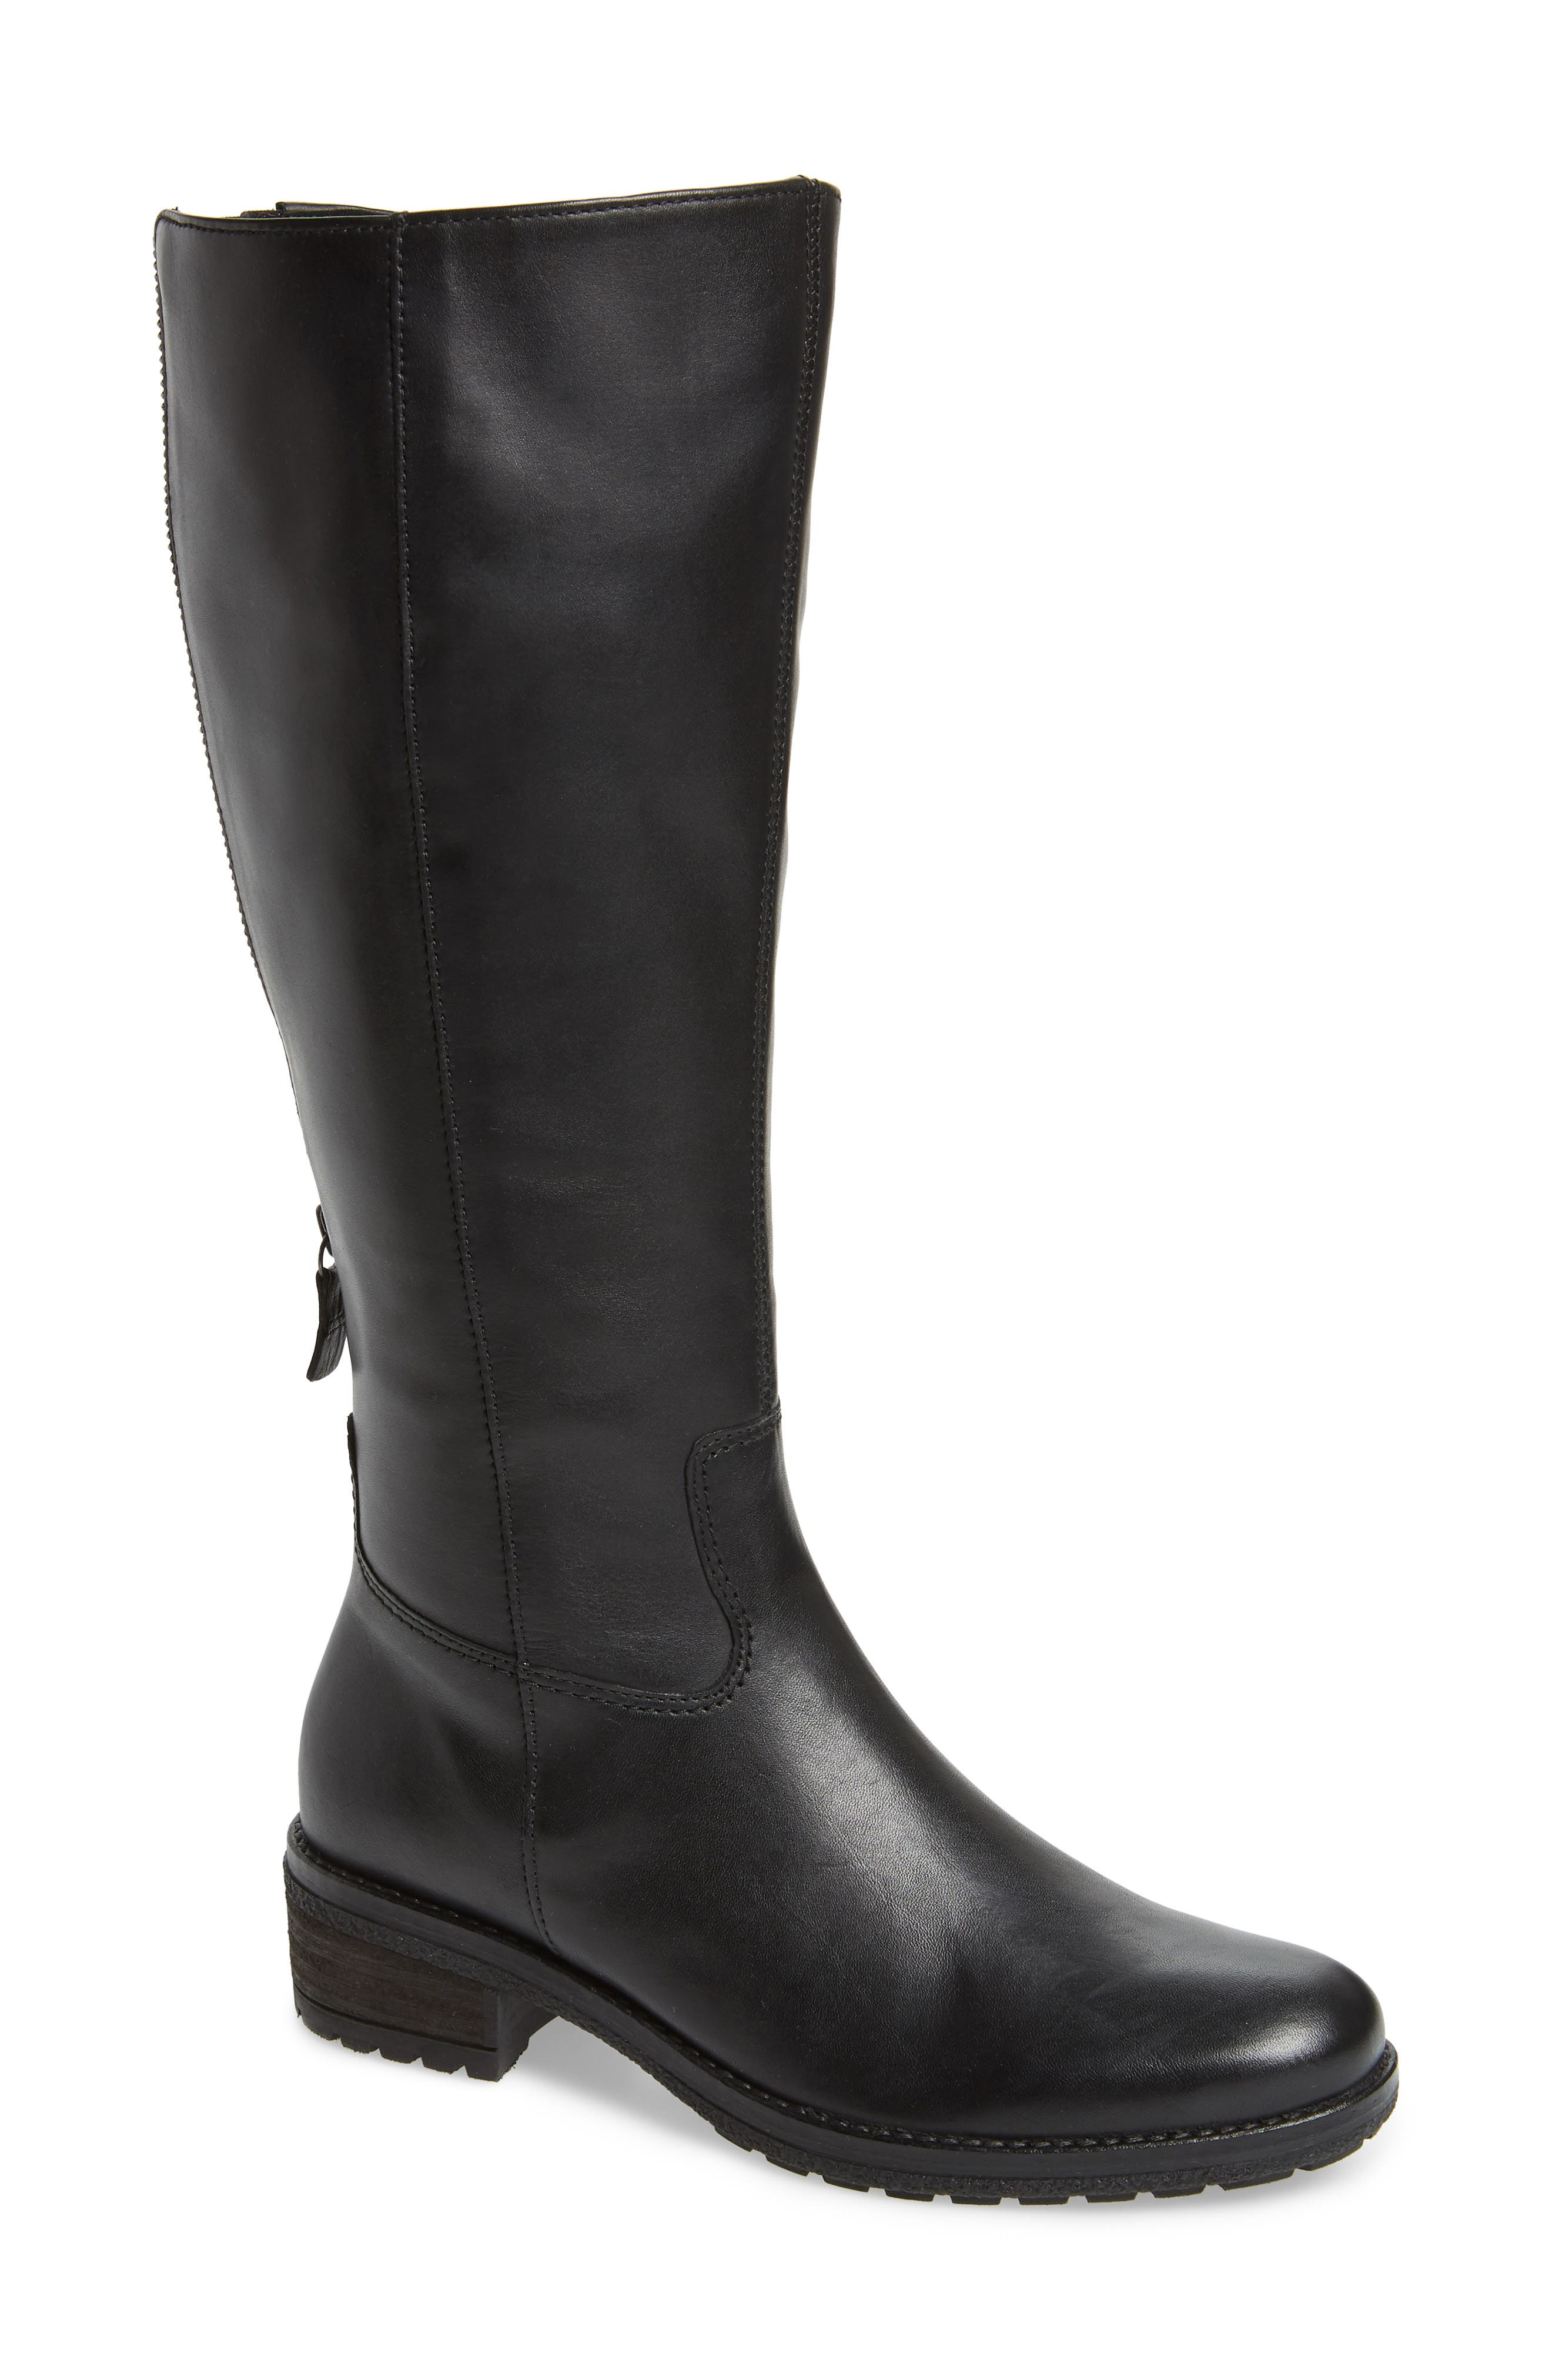 GABOR, Classic Comfort Knee High Riding Boot, Main thumbnail 1, color, BLACK LEATHER